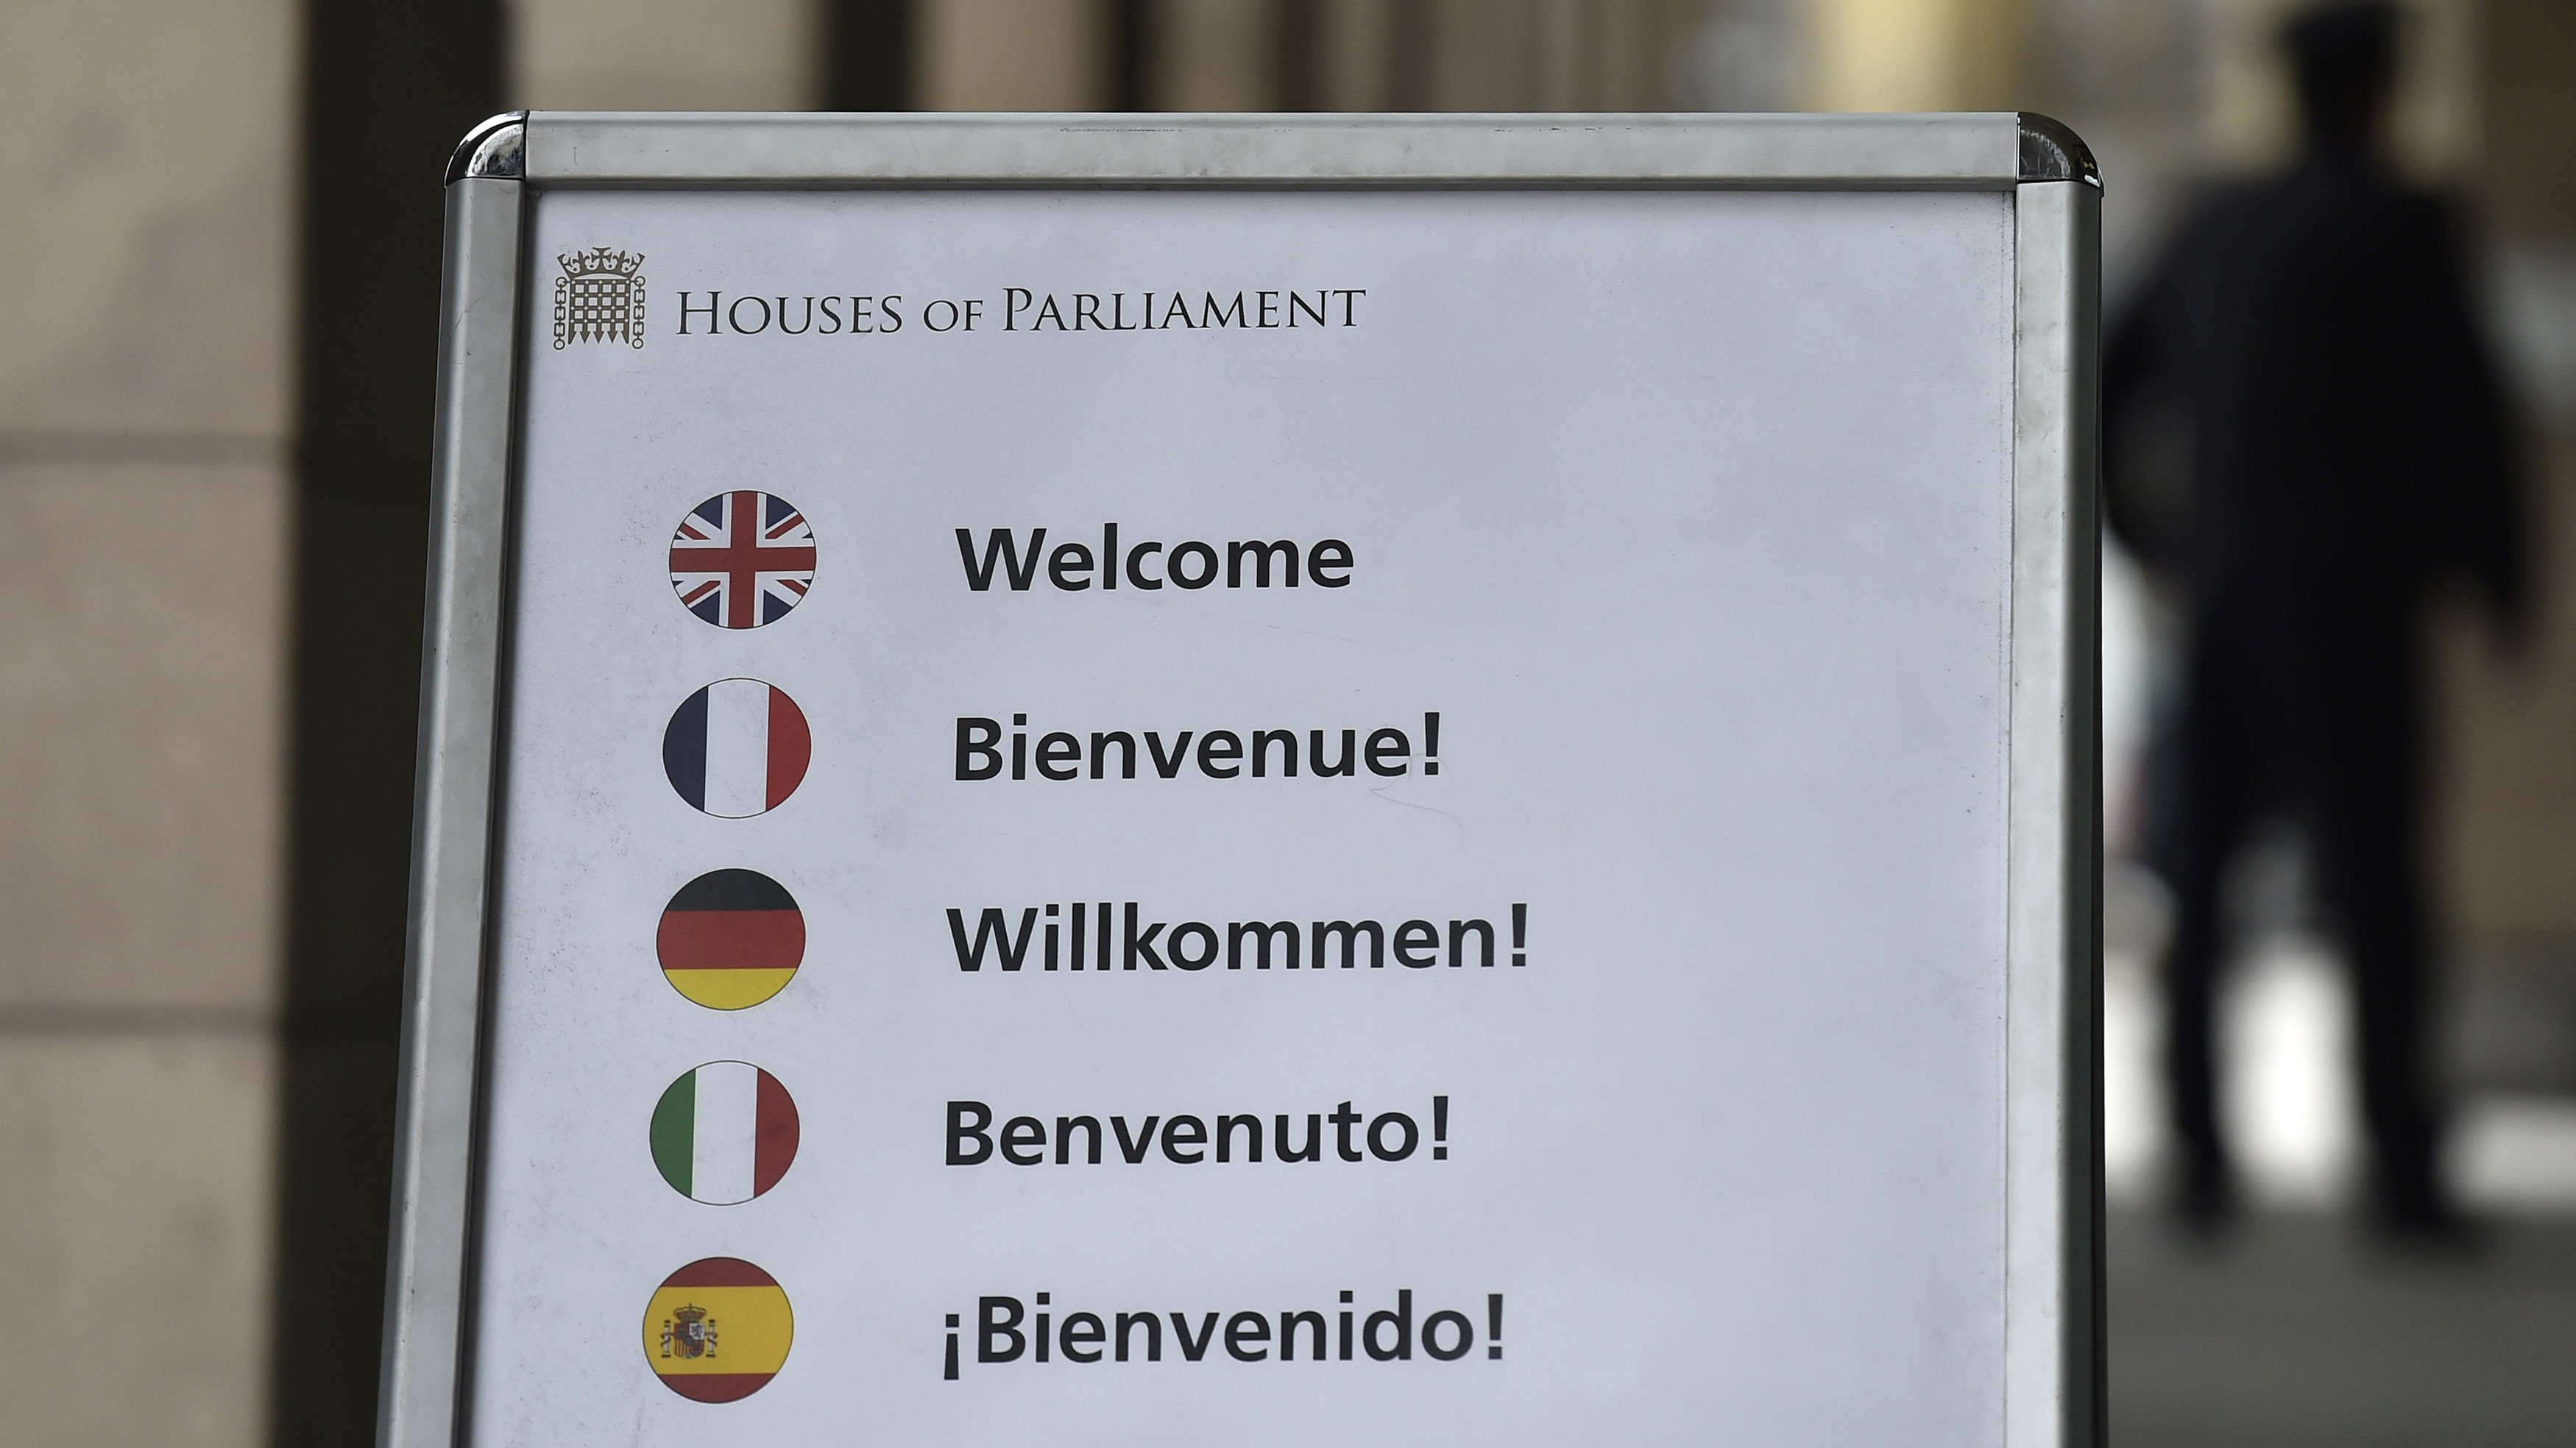 A board with various European language 'welcome' signage and national flag displays is seen outside of The Houses of Parliament in central London, Britain, February 22 , 2016. Prime Minister David Cameron will try to sell his case for Britain remaining in the European Union to parliament on Monday, facing hostility from his own lawmakers and an exit campaign energised by the backing of London Mayor Boris Johnson. REUTERS/Toby Melville - RTX281B0